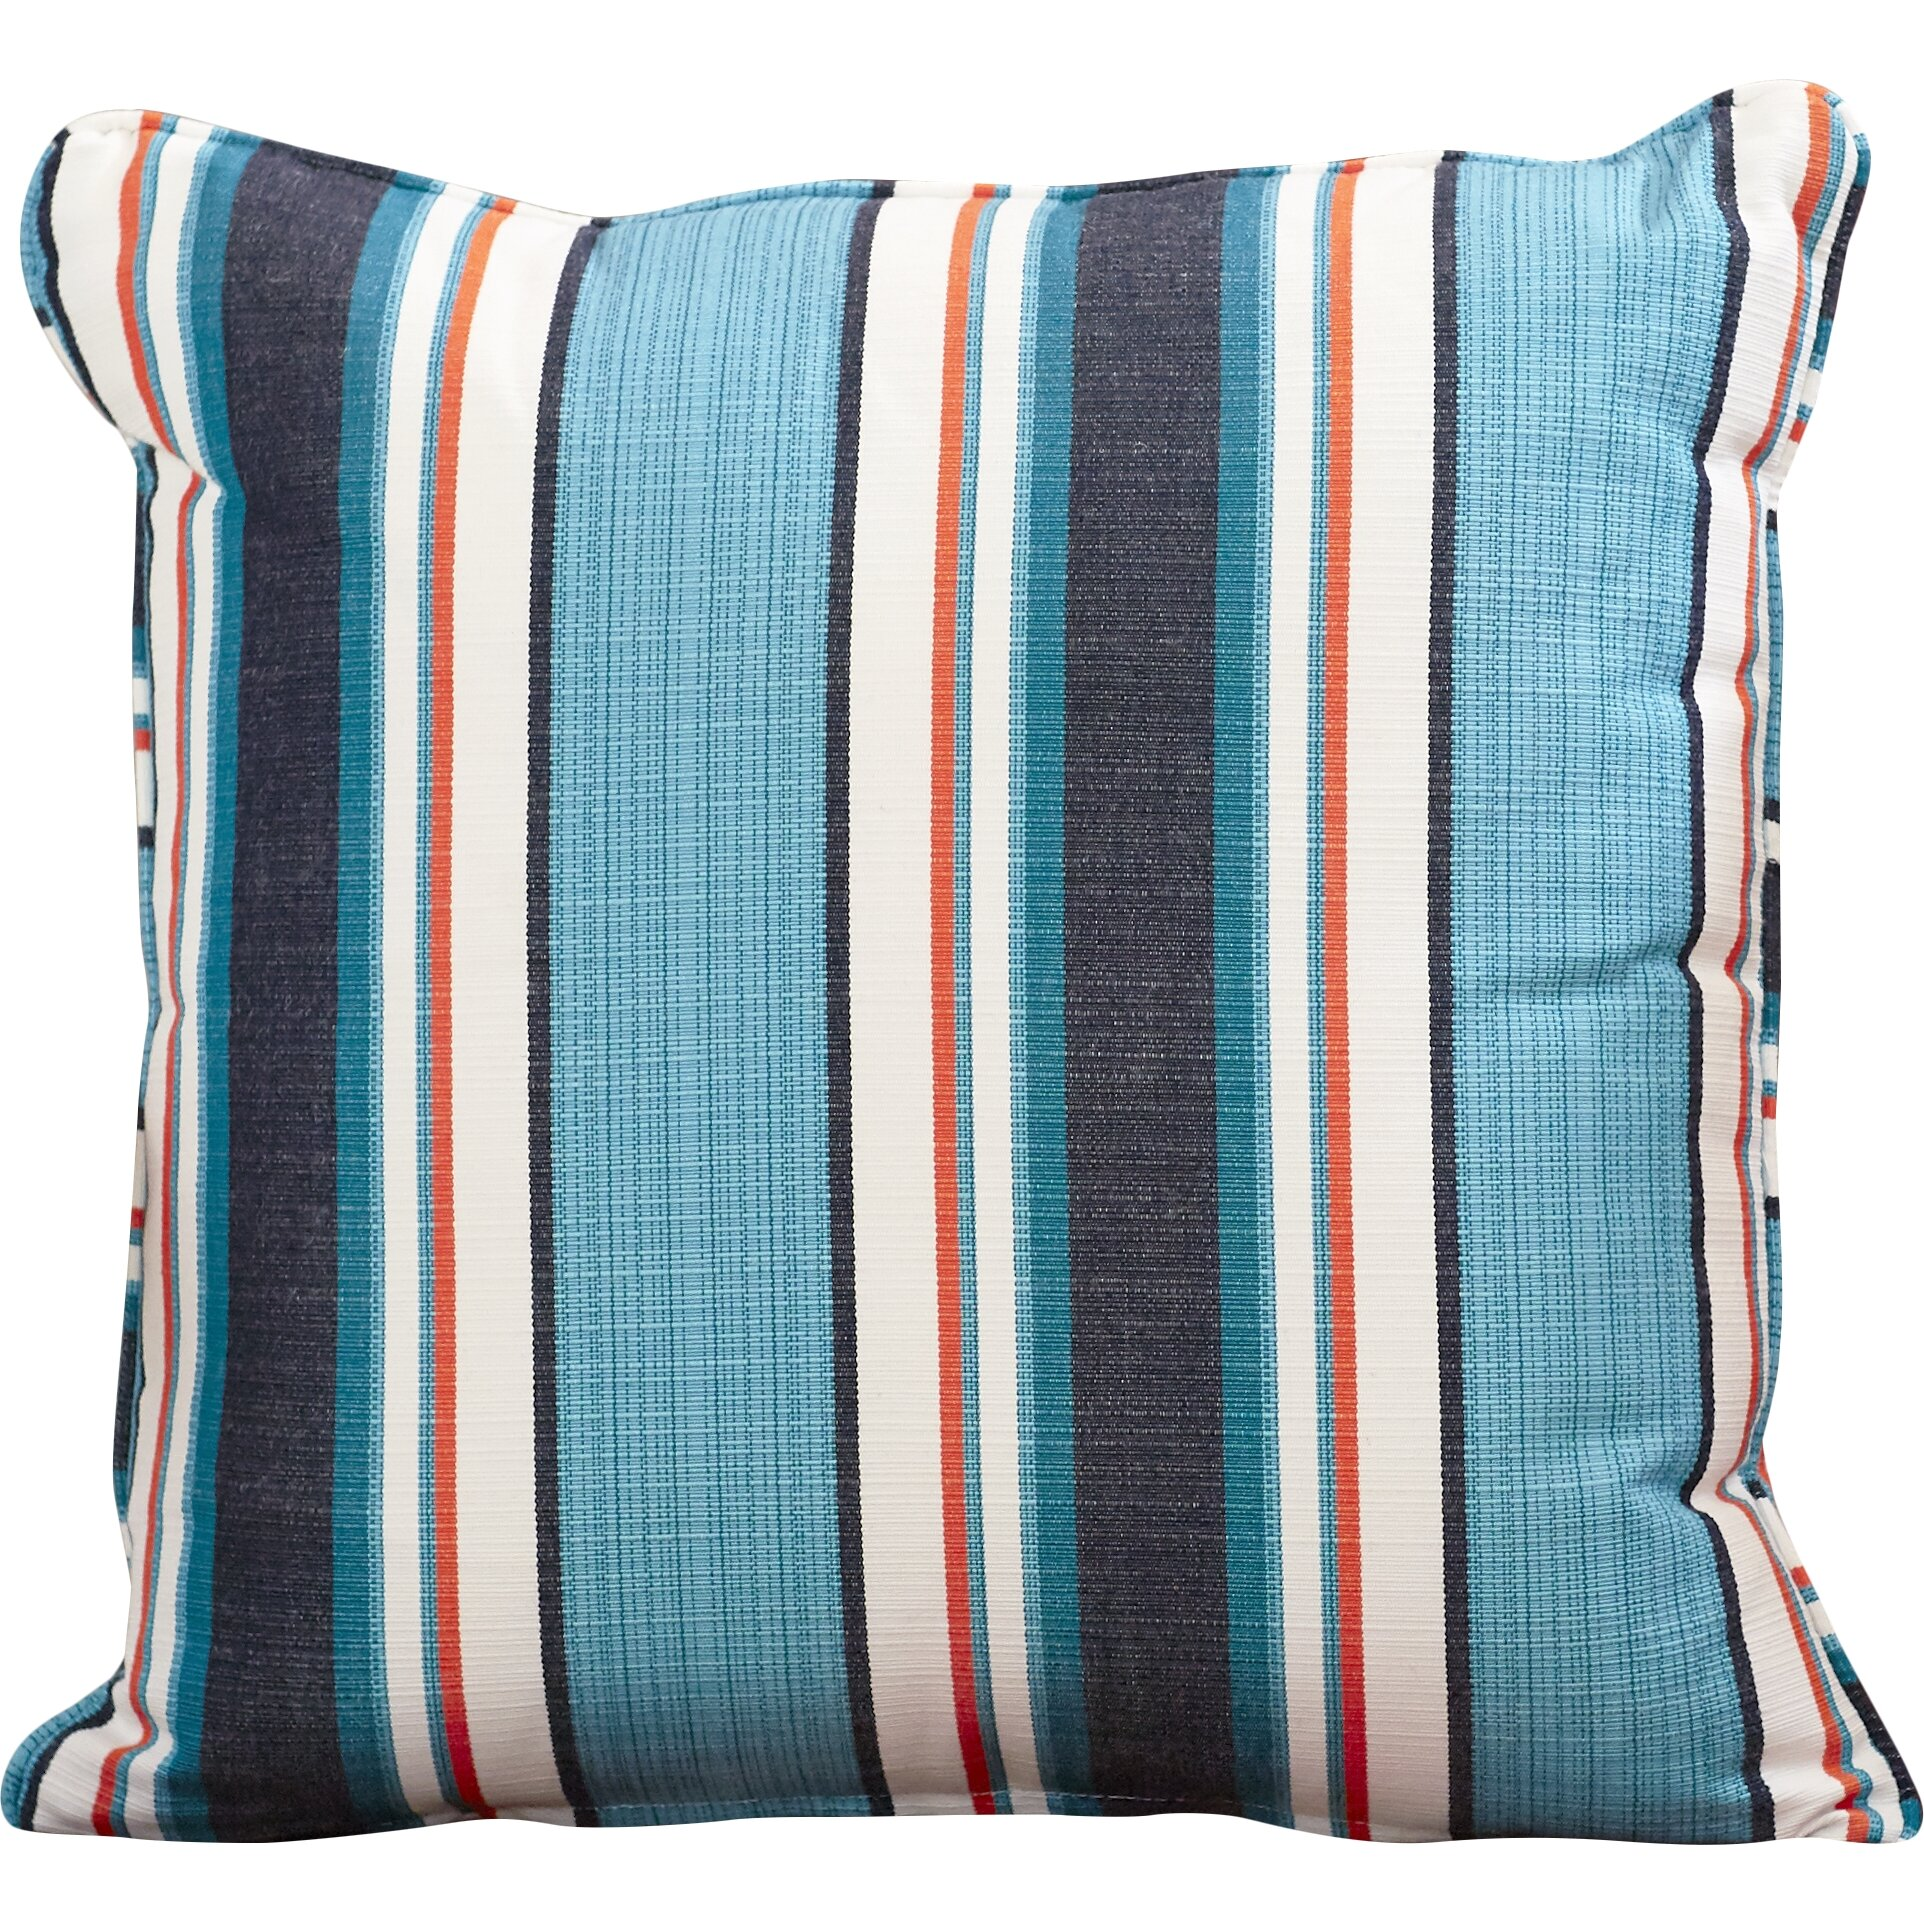 Wayfair Custom Outdoor Cushions Outdoor Sunbrella Throw Pillow & Reviews Wayfair